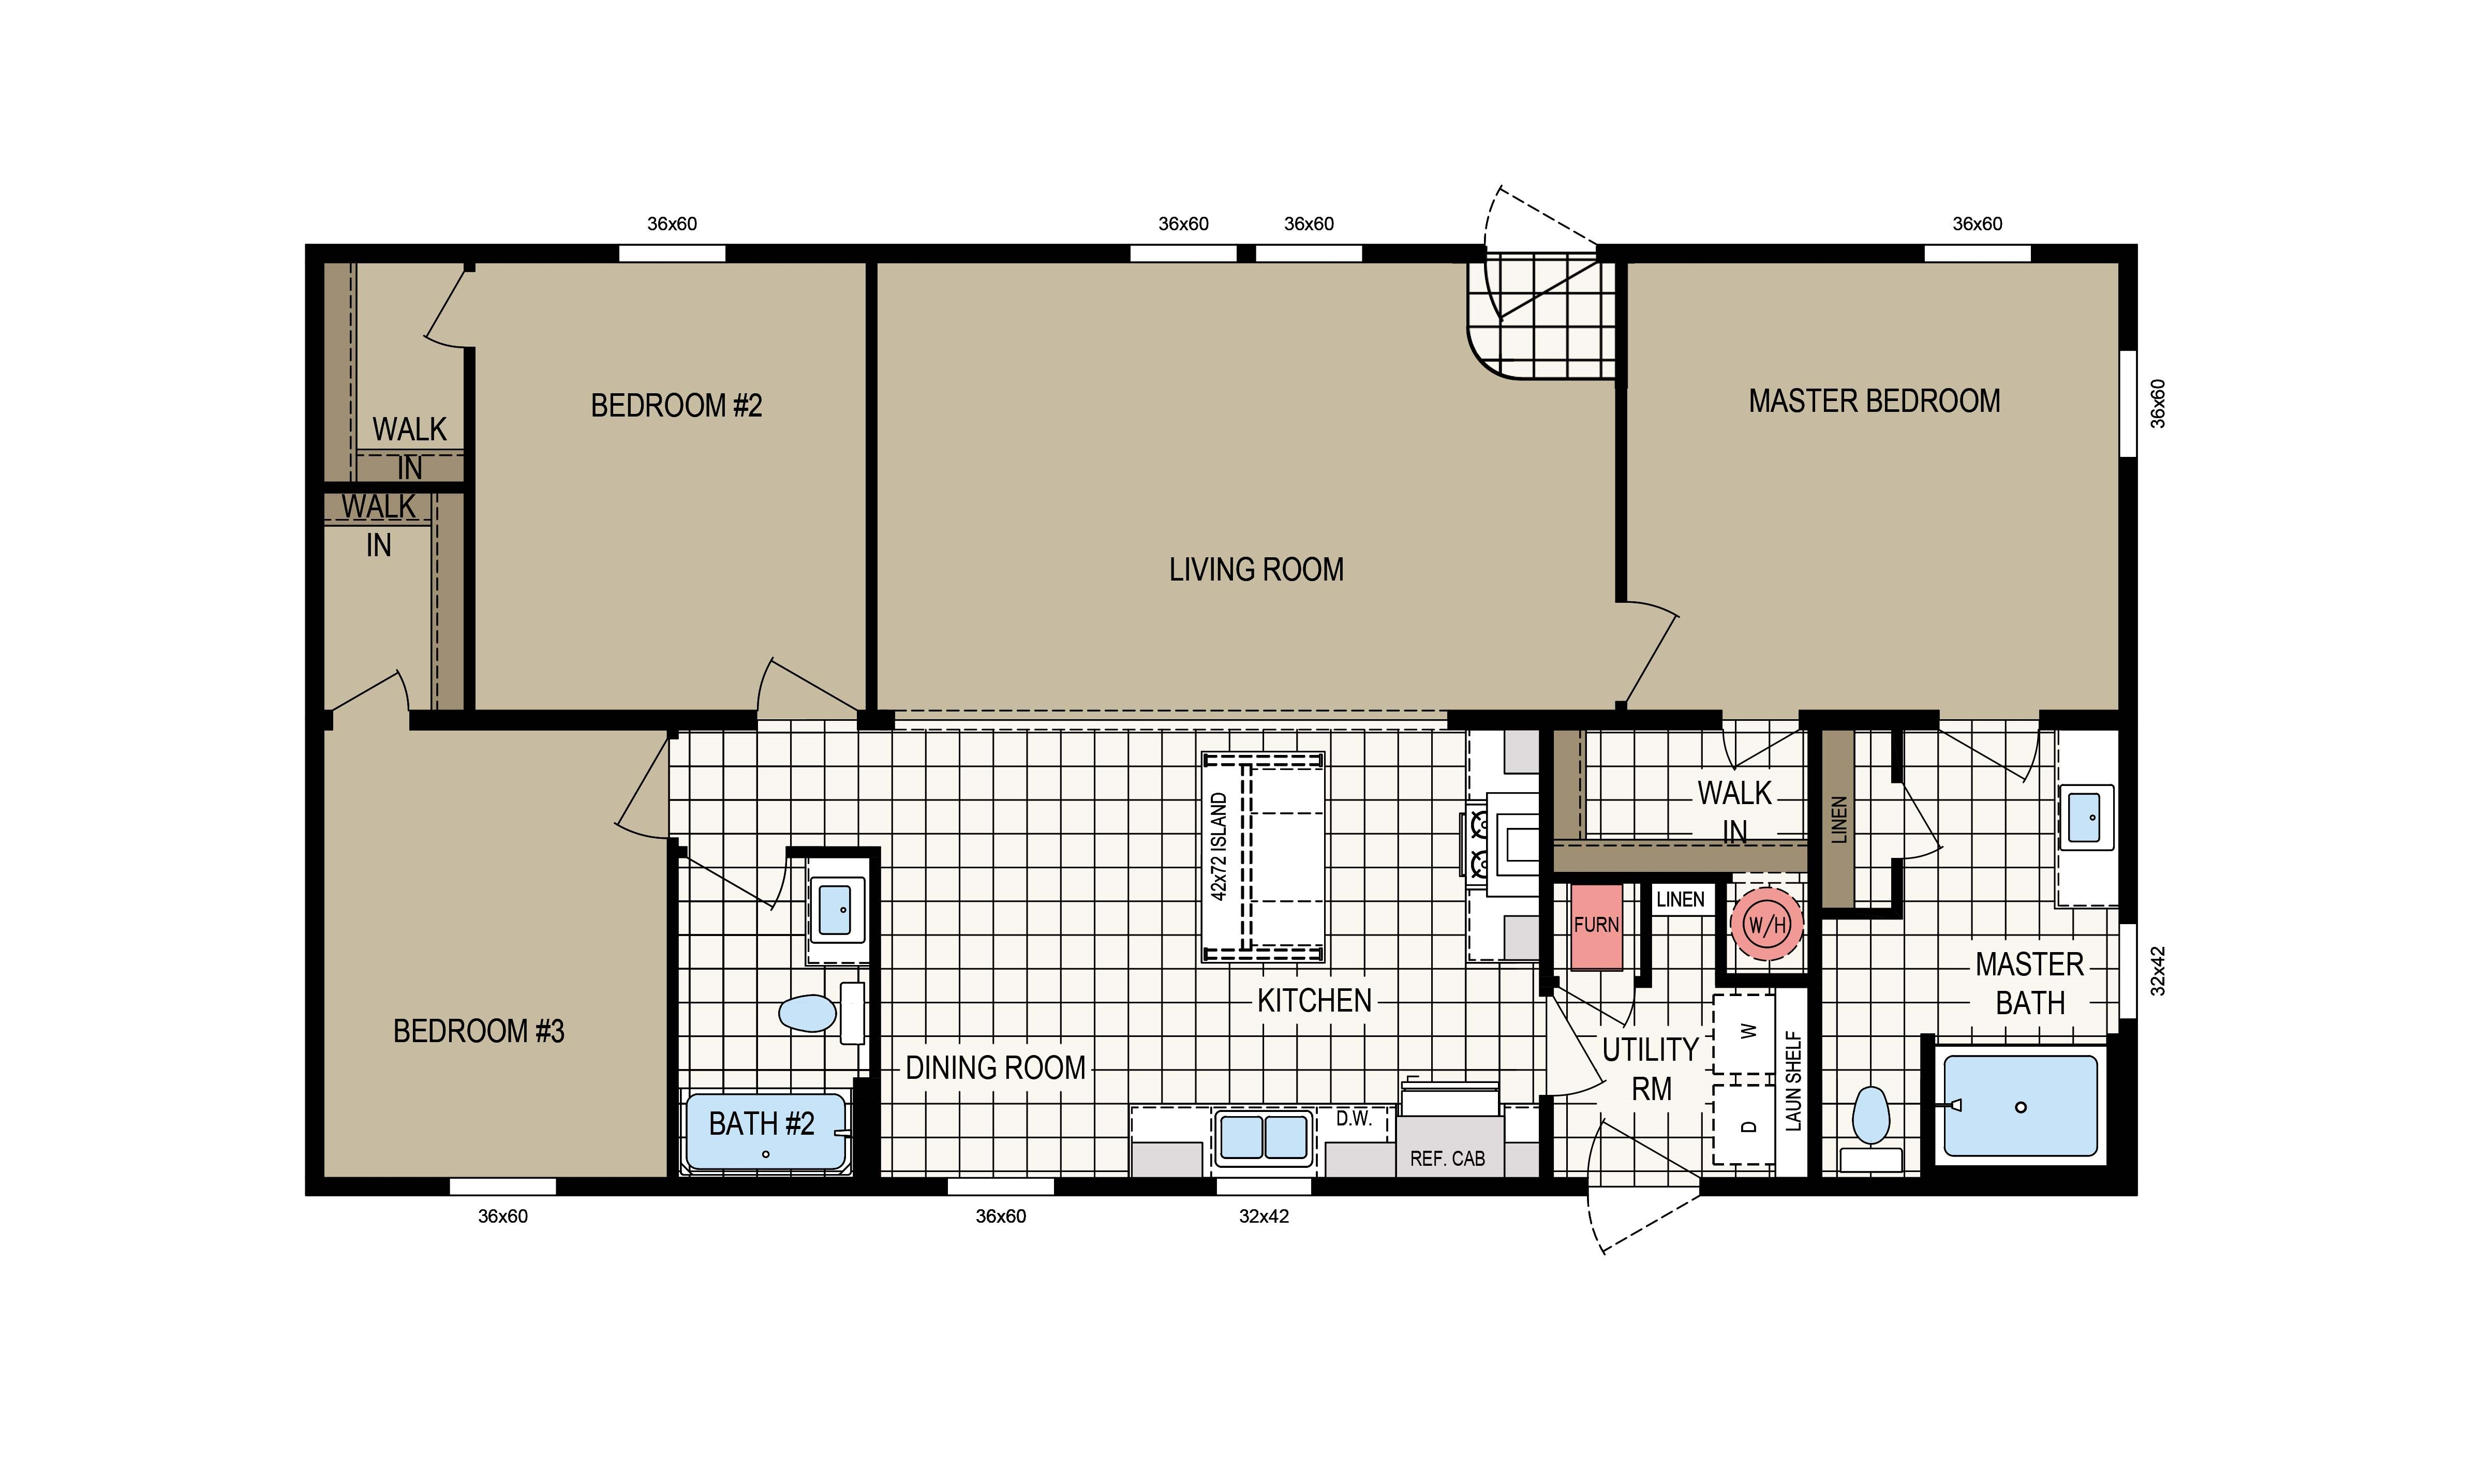 floorplan image for unit 393